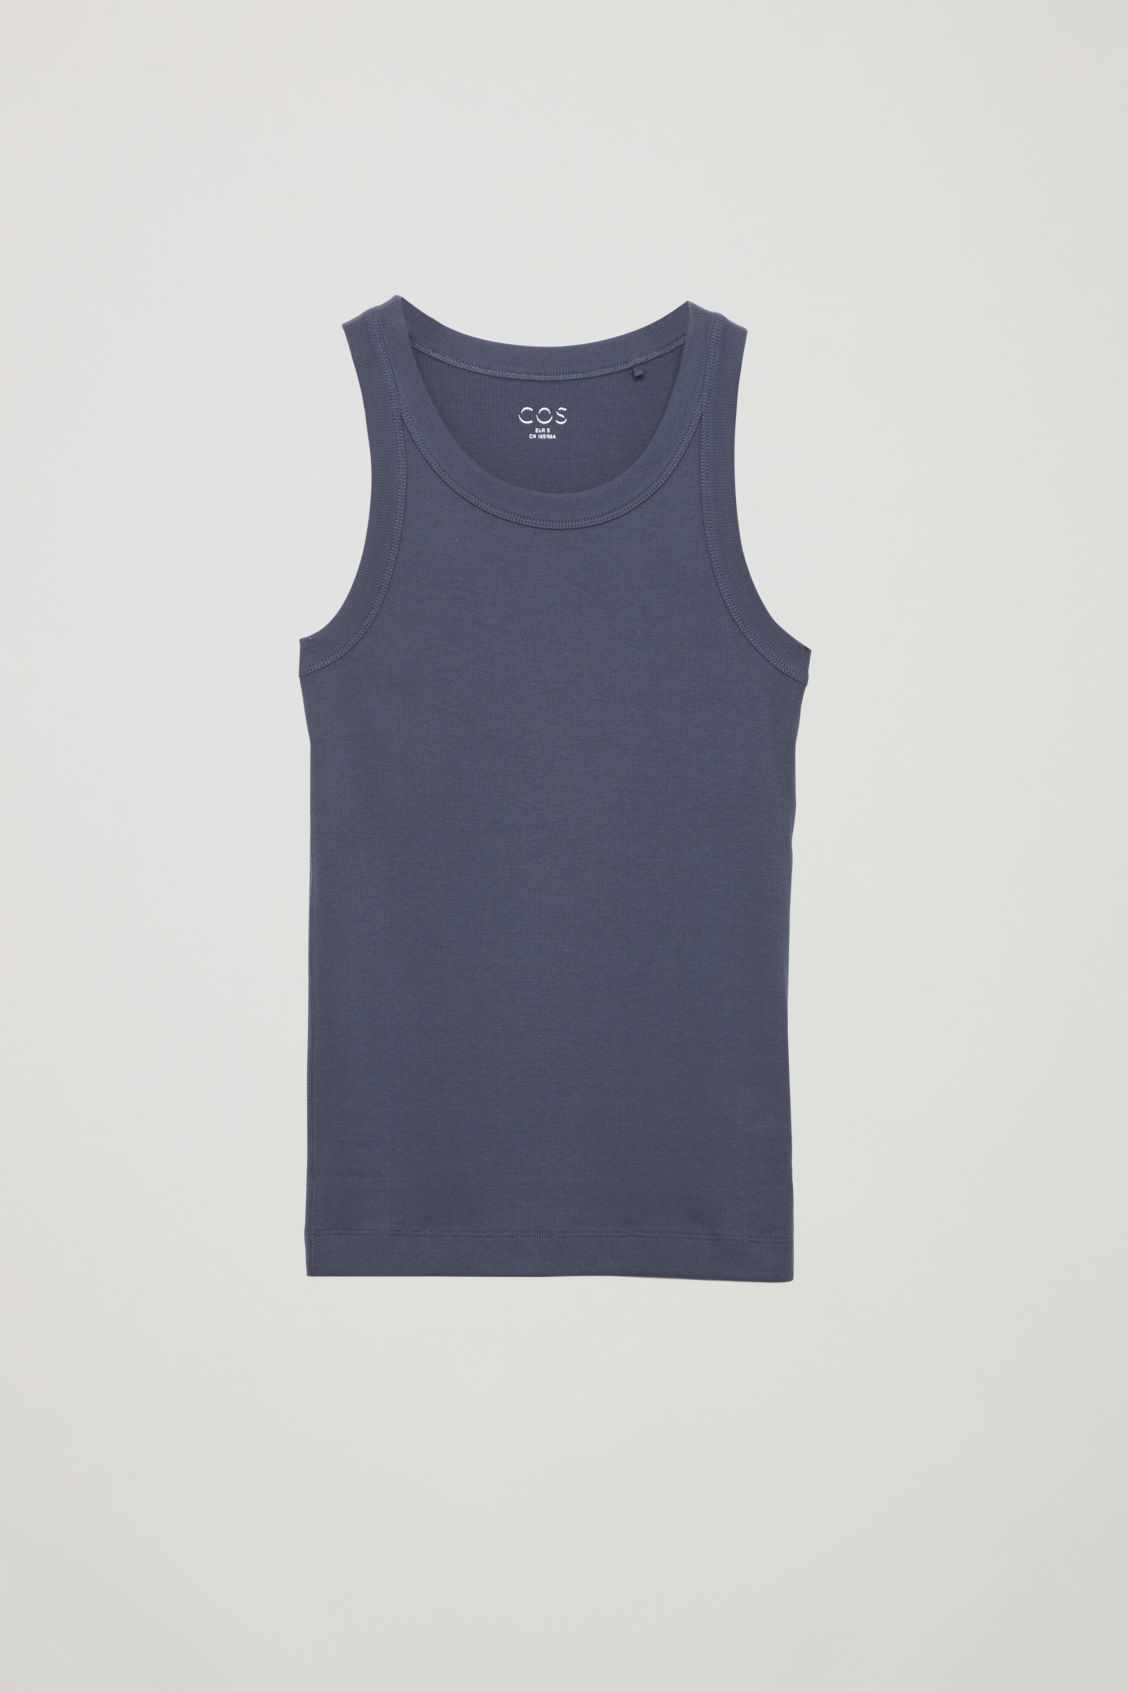 Cos Ribbed Vest Top In Blue